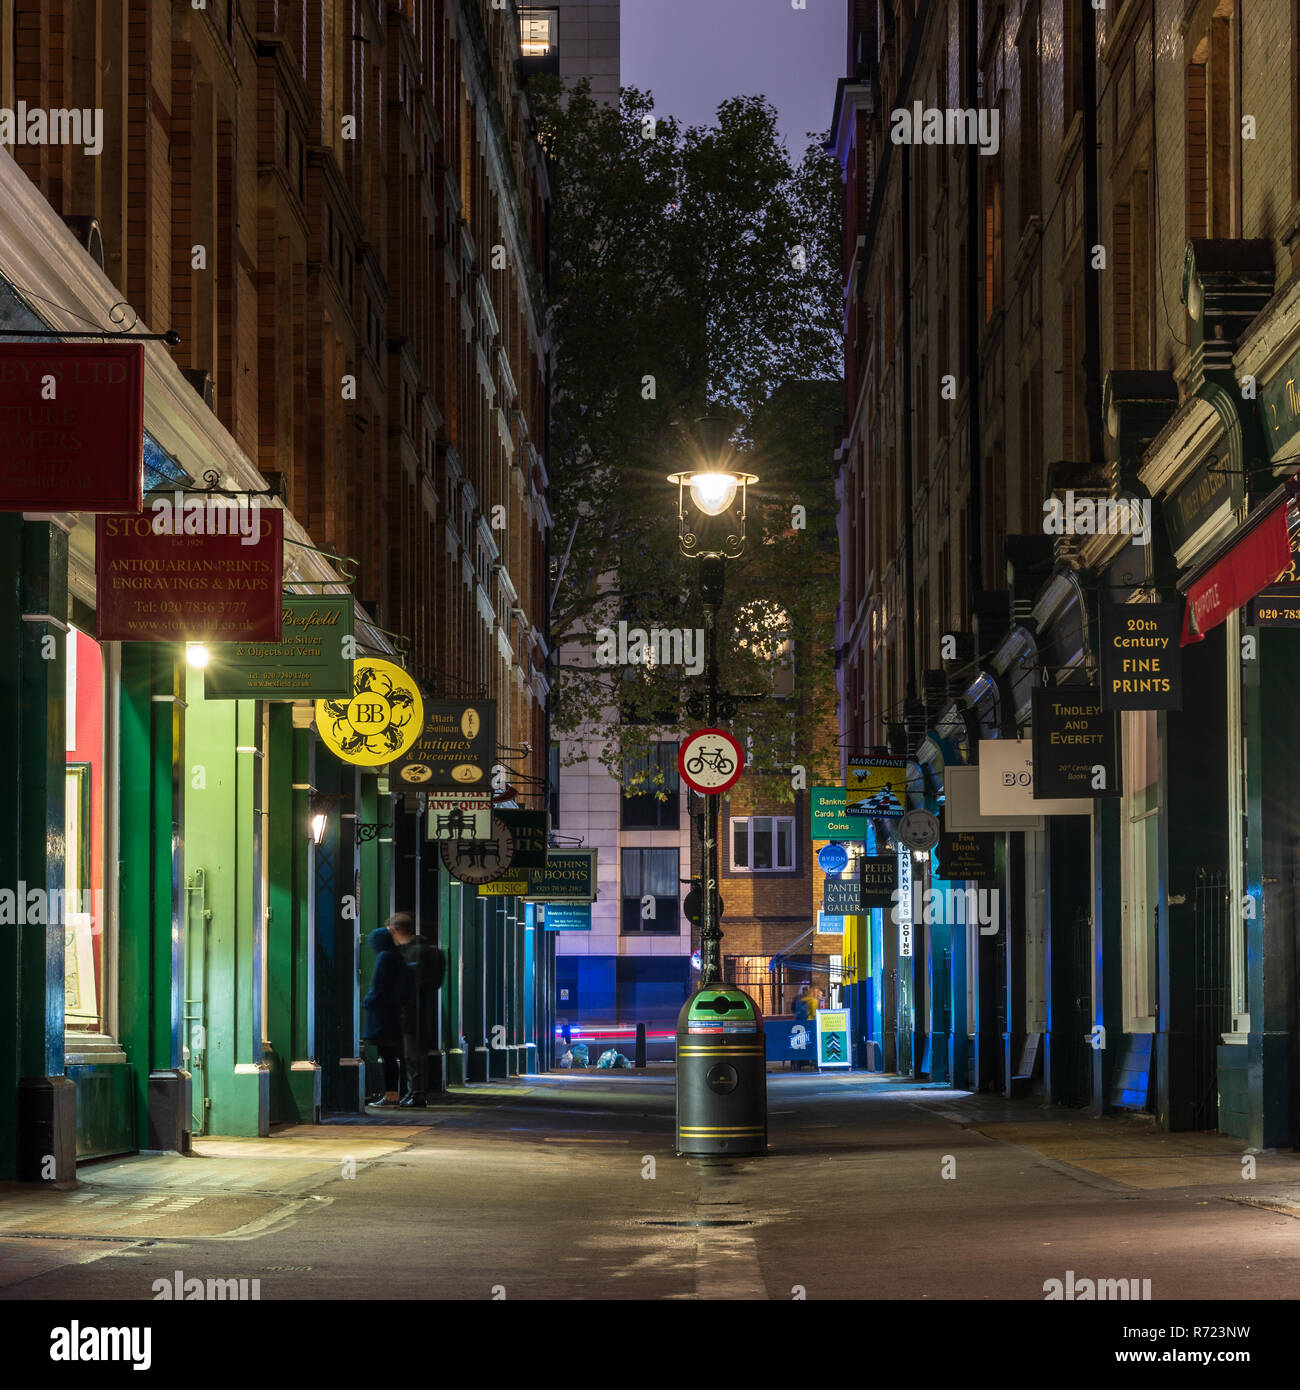 London, England, UK - October 15, 2018: Pedestrians browse traditional shop windows on the pedestrianised Cecil Court street, off Charing Cross Road i - Stock Image